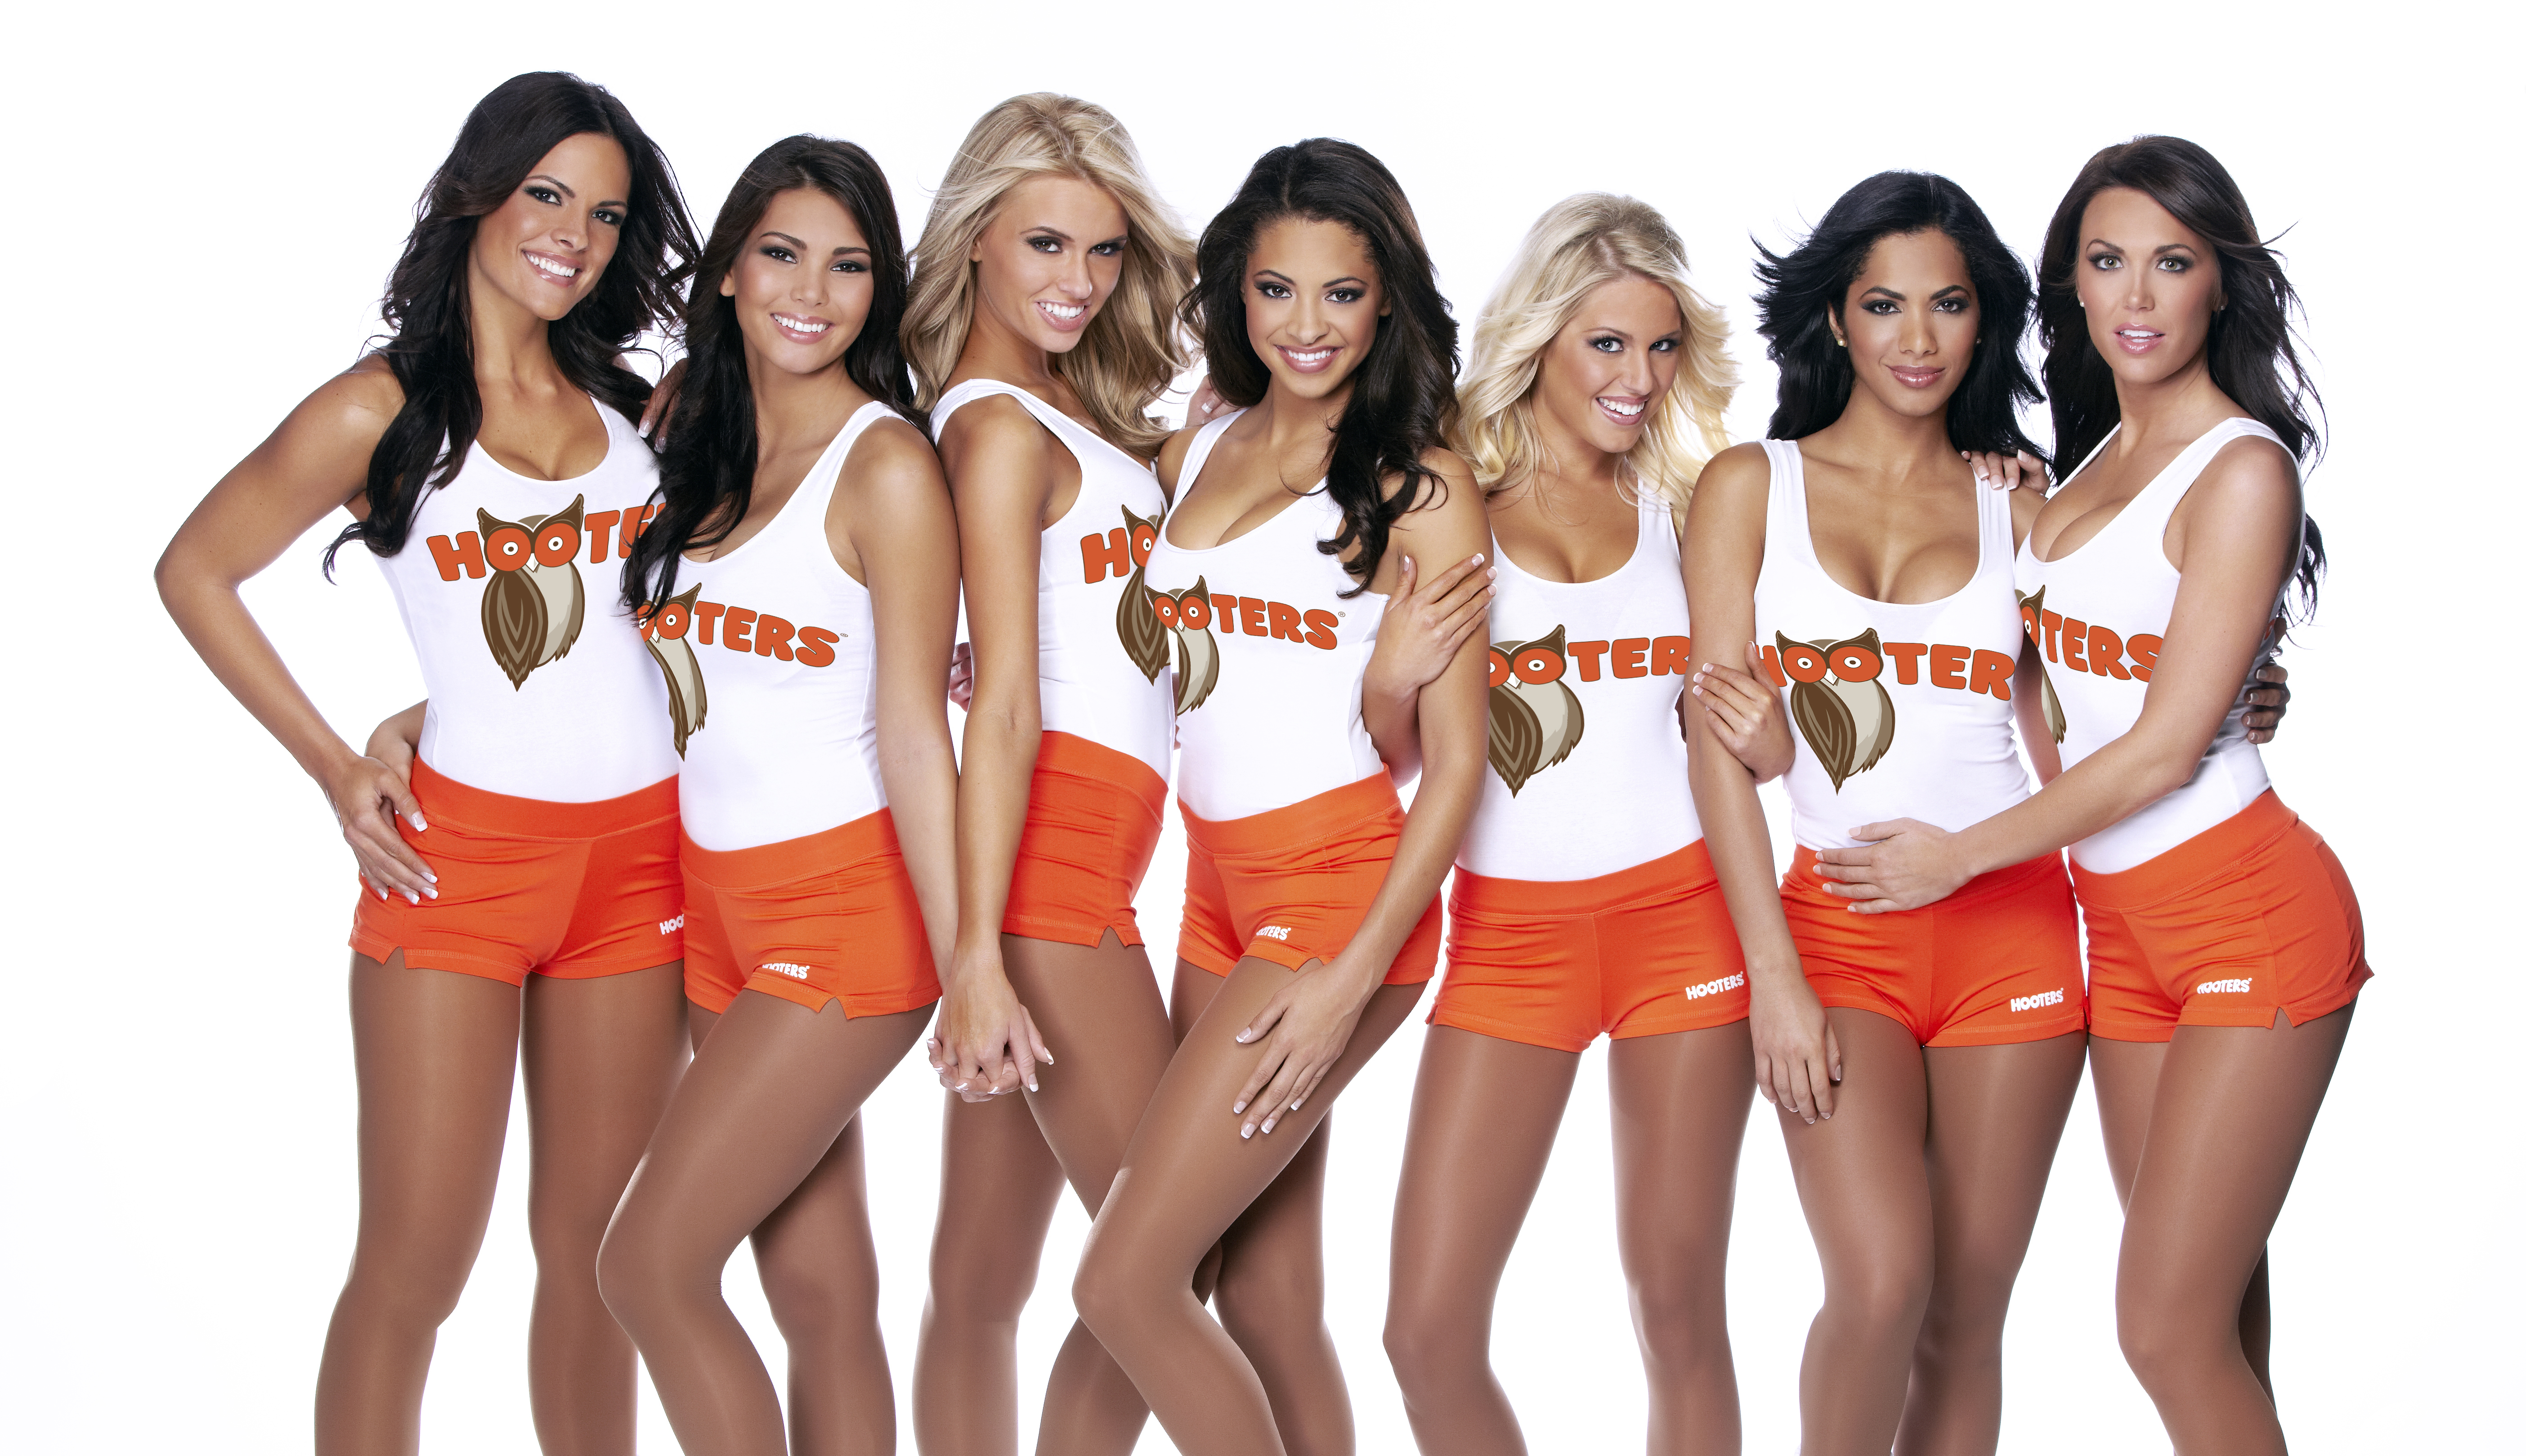 Nice Images Collection: Hooters Desktop Wallpapers